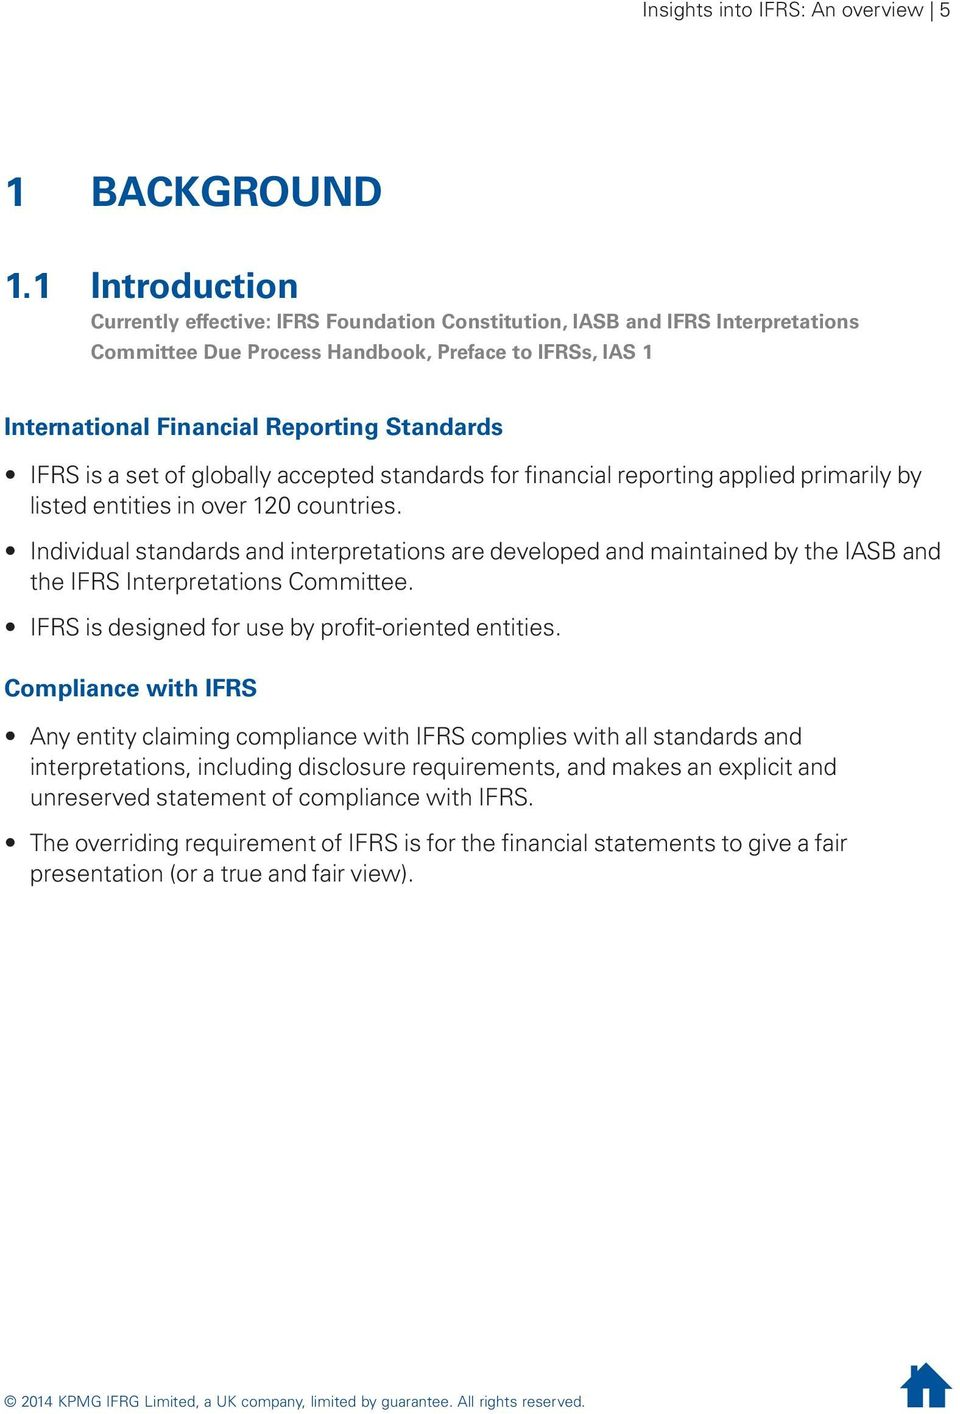 IFRS is a set of globally accepted standards for financial reporting applied primarily by listed entities in over 120 countries.